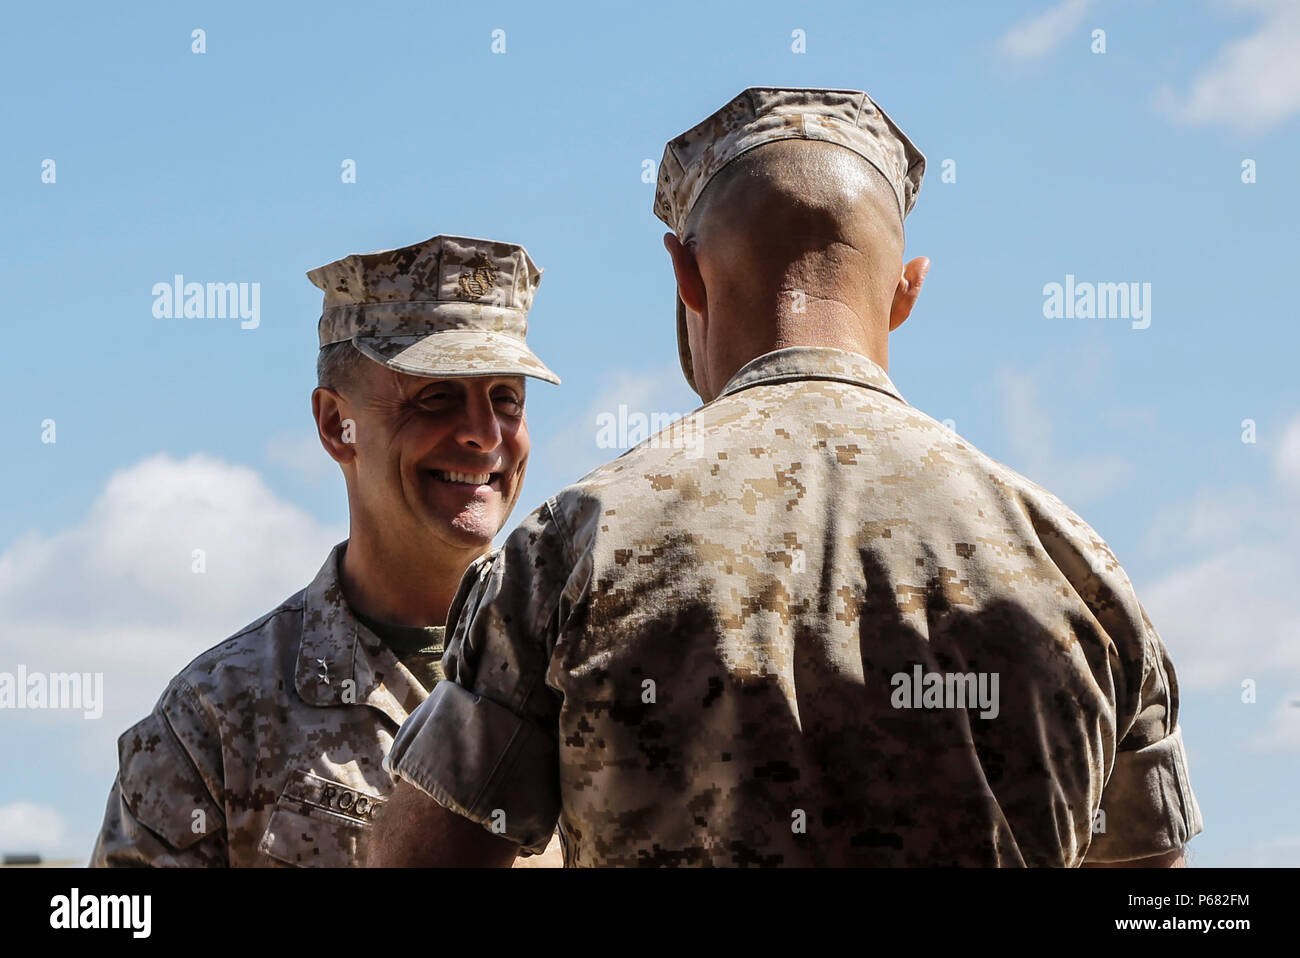 U.S. Marine Corps Maj. Gen. Michael A. Rocco Commanding Officer of  3d Marine Aircraft Wing (MAW) and Sgt. Maj. Patrick L. Kimble Sergeant Major of 3d MAW, shake hands during a relief and appointment ceremony on Marine Corps Air Station Miramar, San Diego, Calif., May 23, 2016. Sgt. Maj. Patrick L. Kimble relinquished his post as sergeant major of 3d MAW to Sgt. Maj. James K. Portfield. (U.S. Marine Corps photo by Lance Cpl. Jeremy Laboy, 3d MAW Combat Camera/Released) Stock Photo